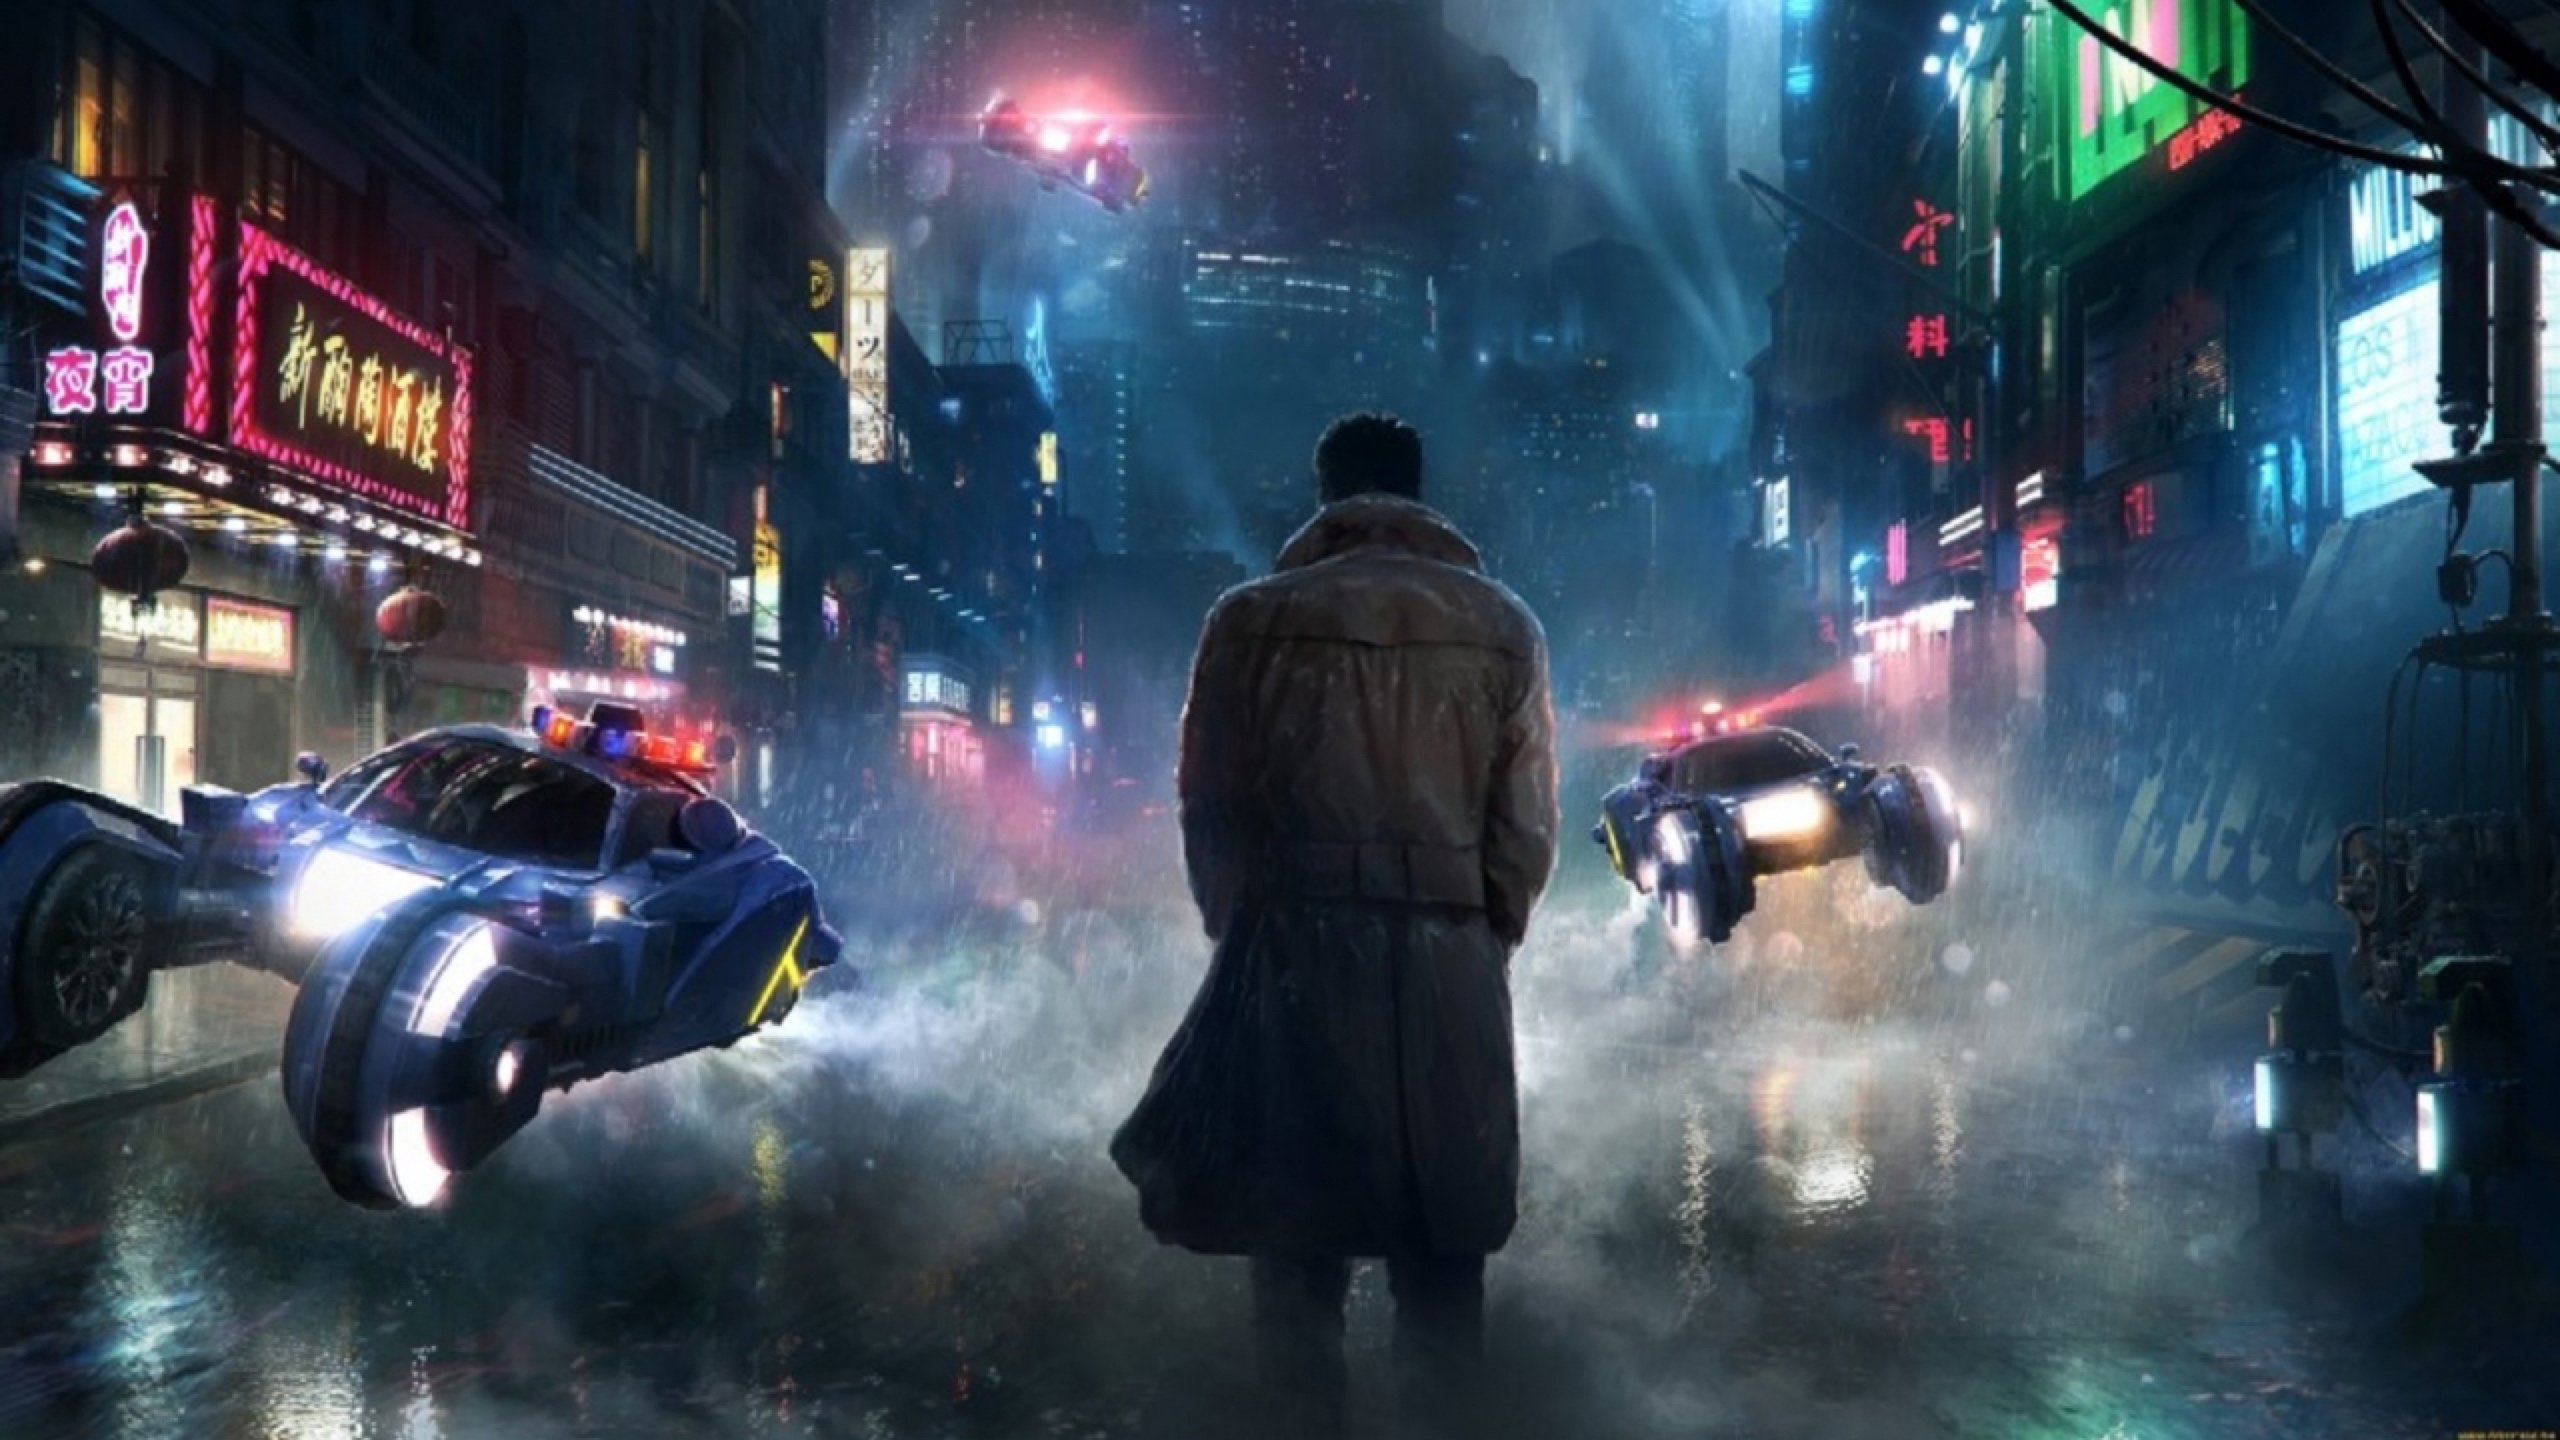 RUMOR: BLADE RUNNER 2049 Will Have an Original Replicant